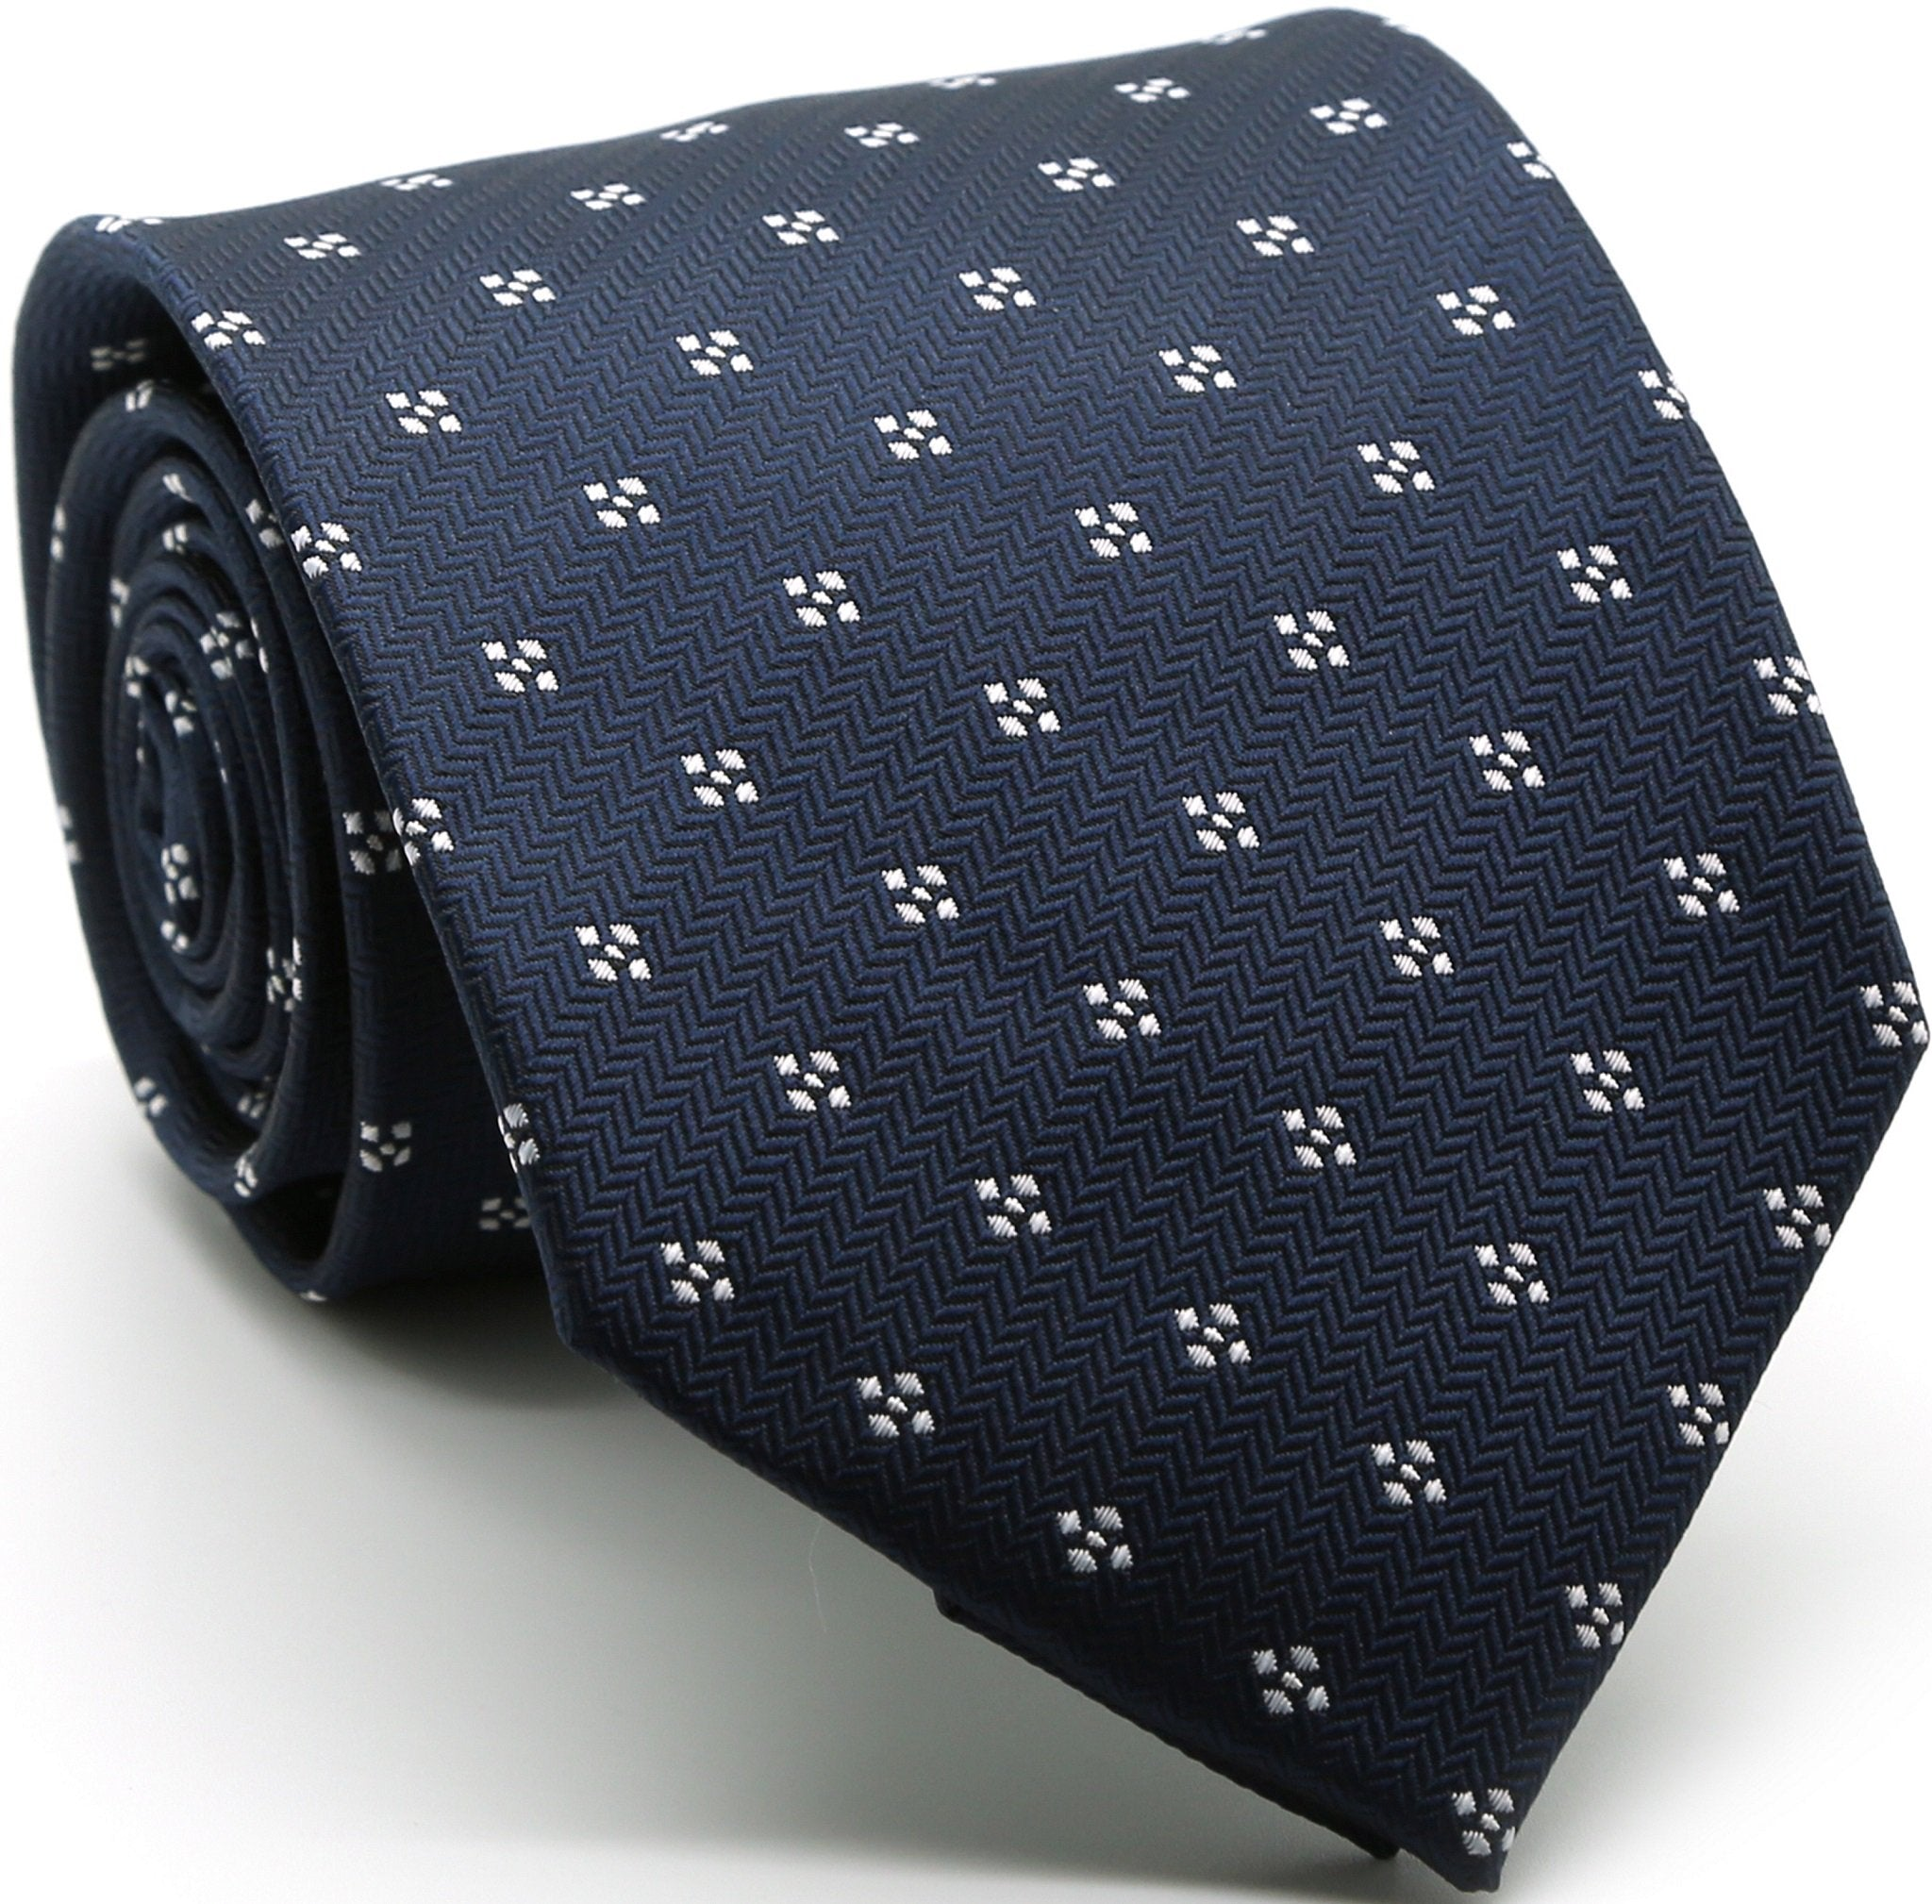 Mens Dads Classic Navy Geometric Pattern Business Casual Necktie & Hanky Set LO-8 - Giorgio's Menswear